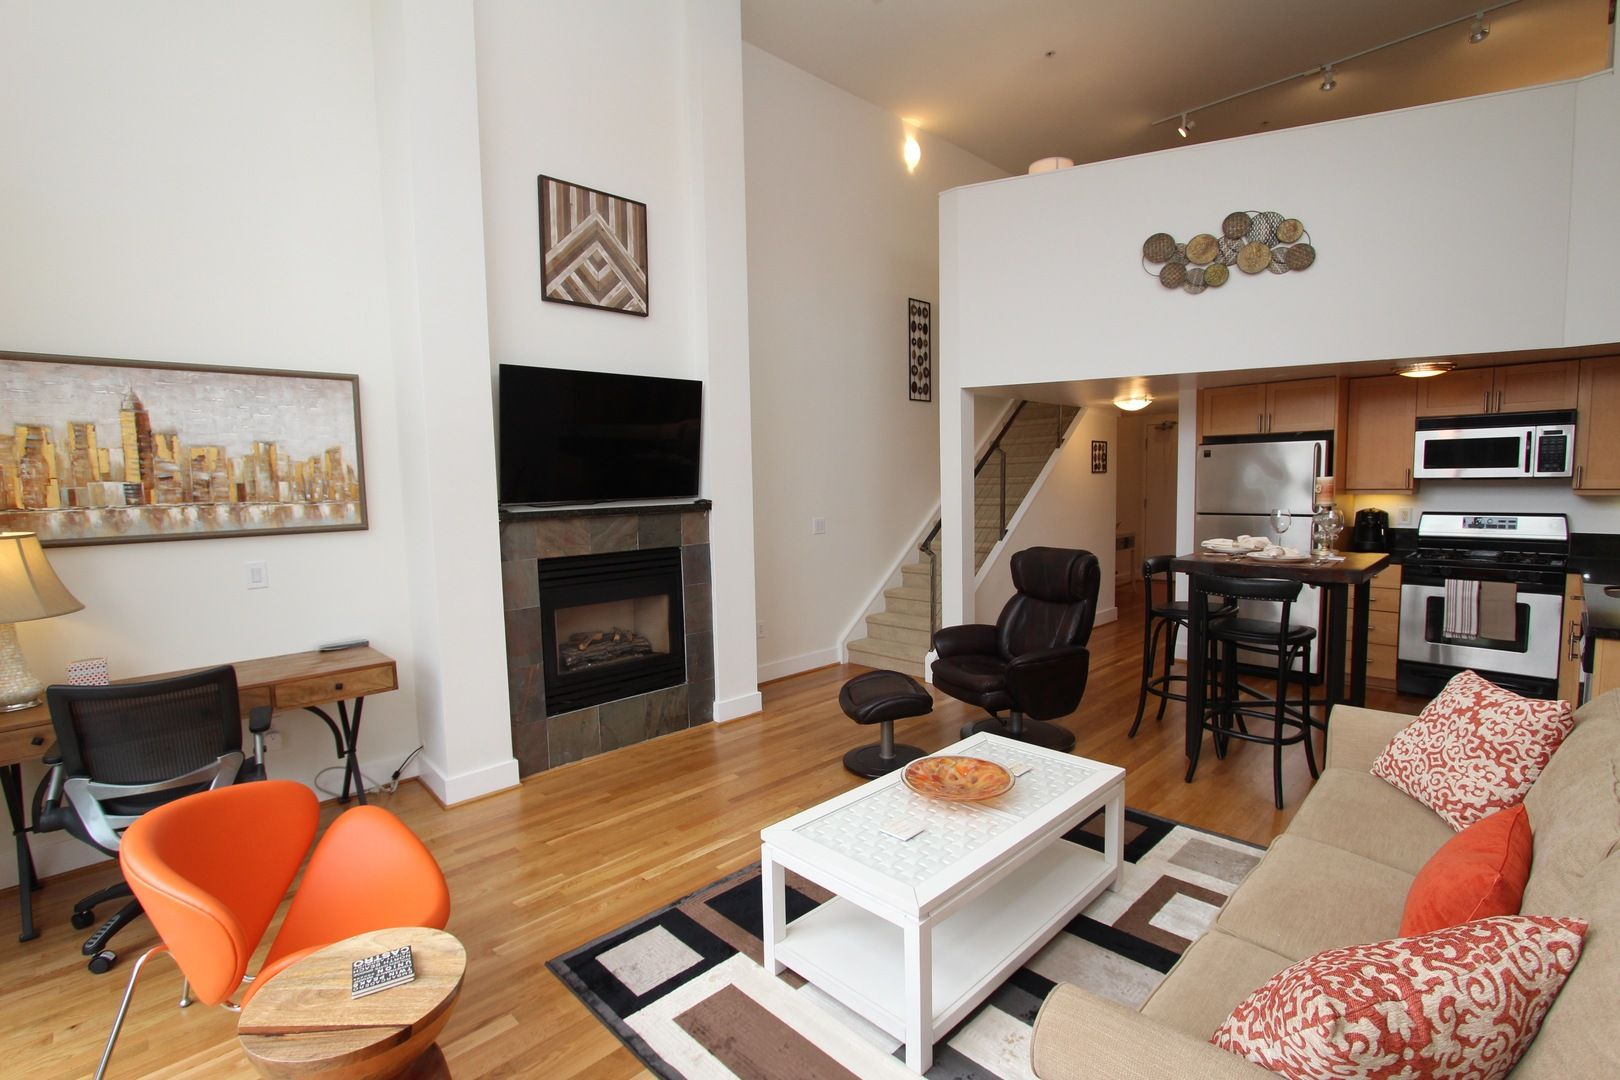 This spectacular 1 bedroom 2 bath loft is on the leading